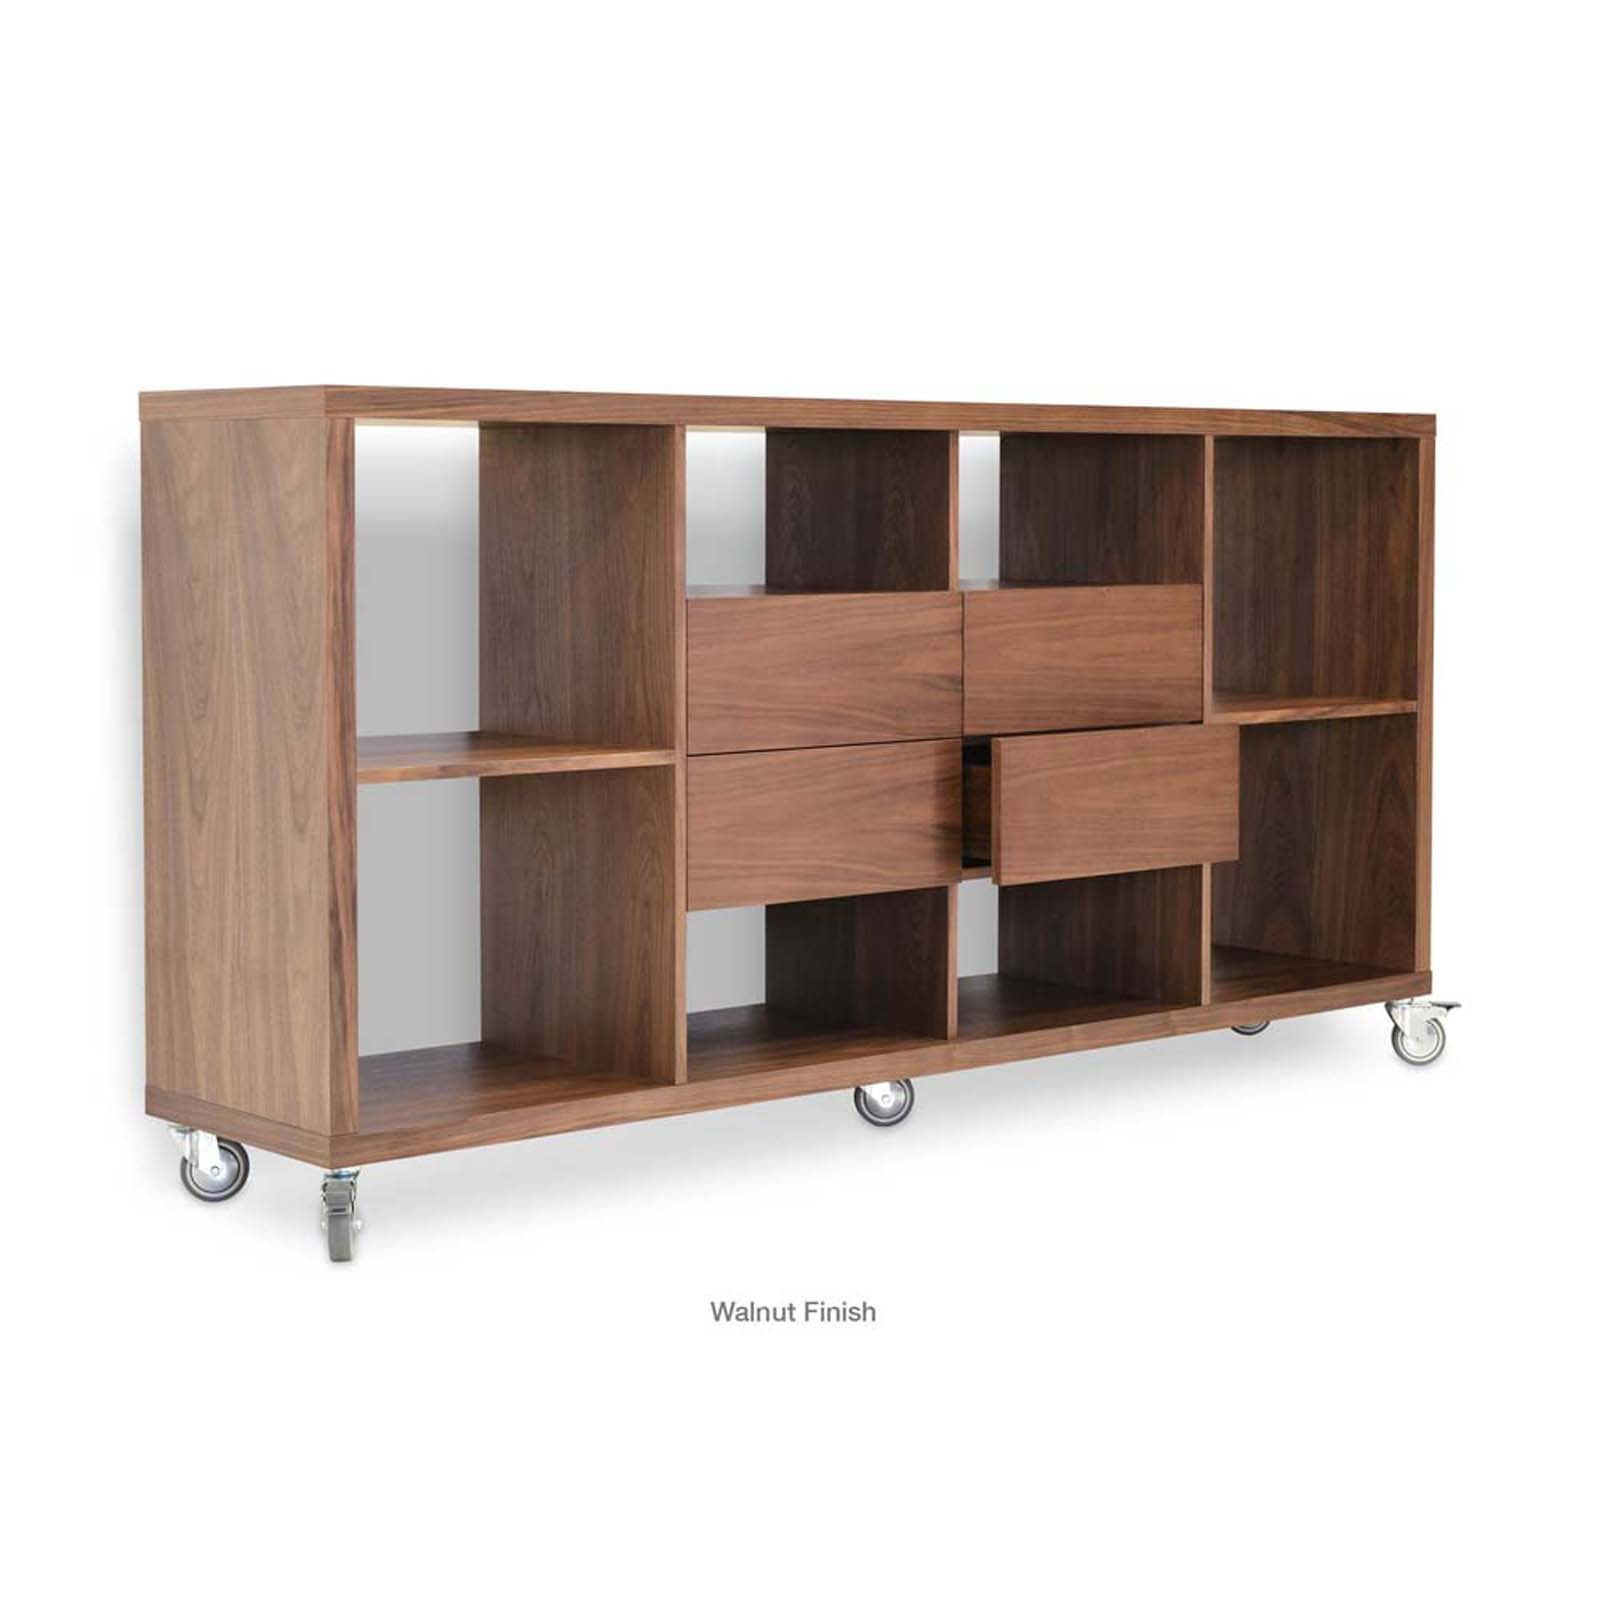 Malta Bookcase with Drawers